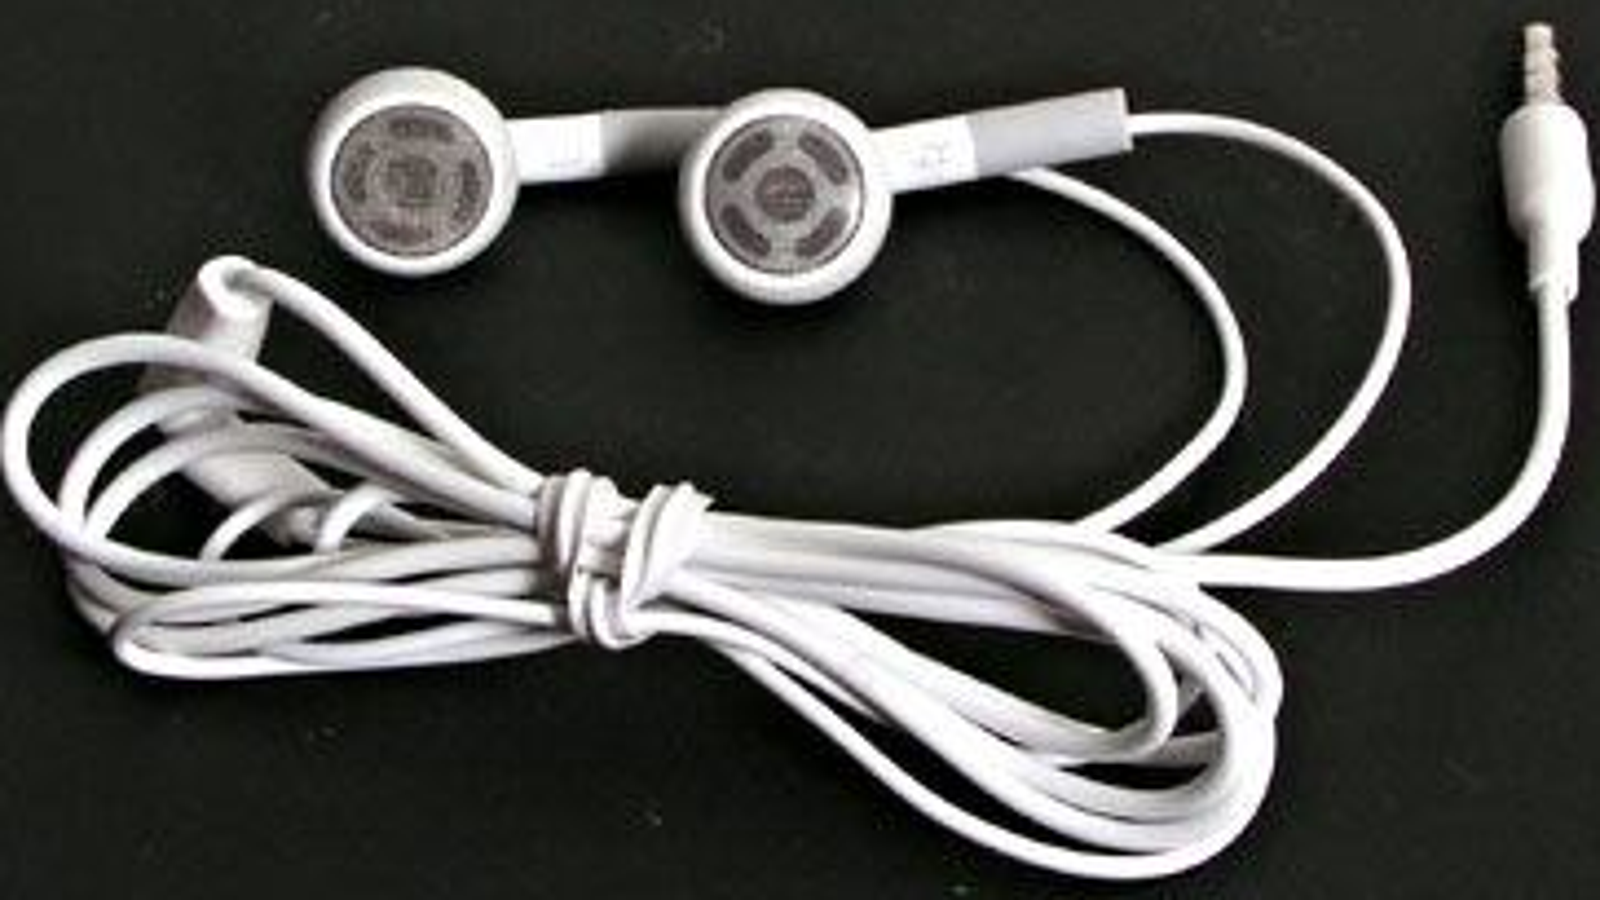 headphones wireless under 5 dollars - Do You Use Apple Earbuds?